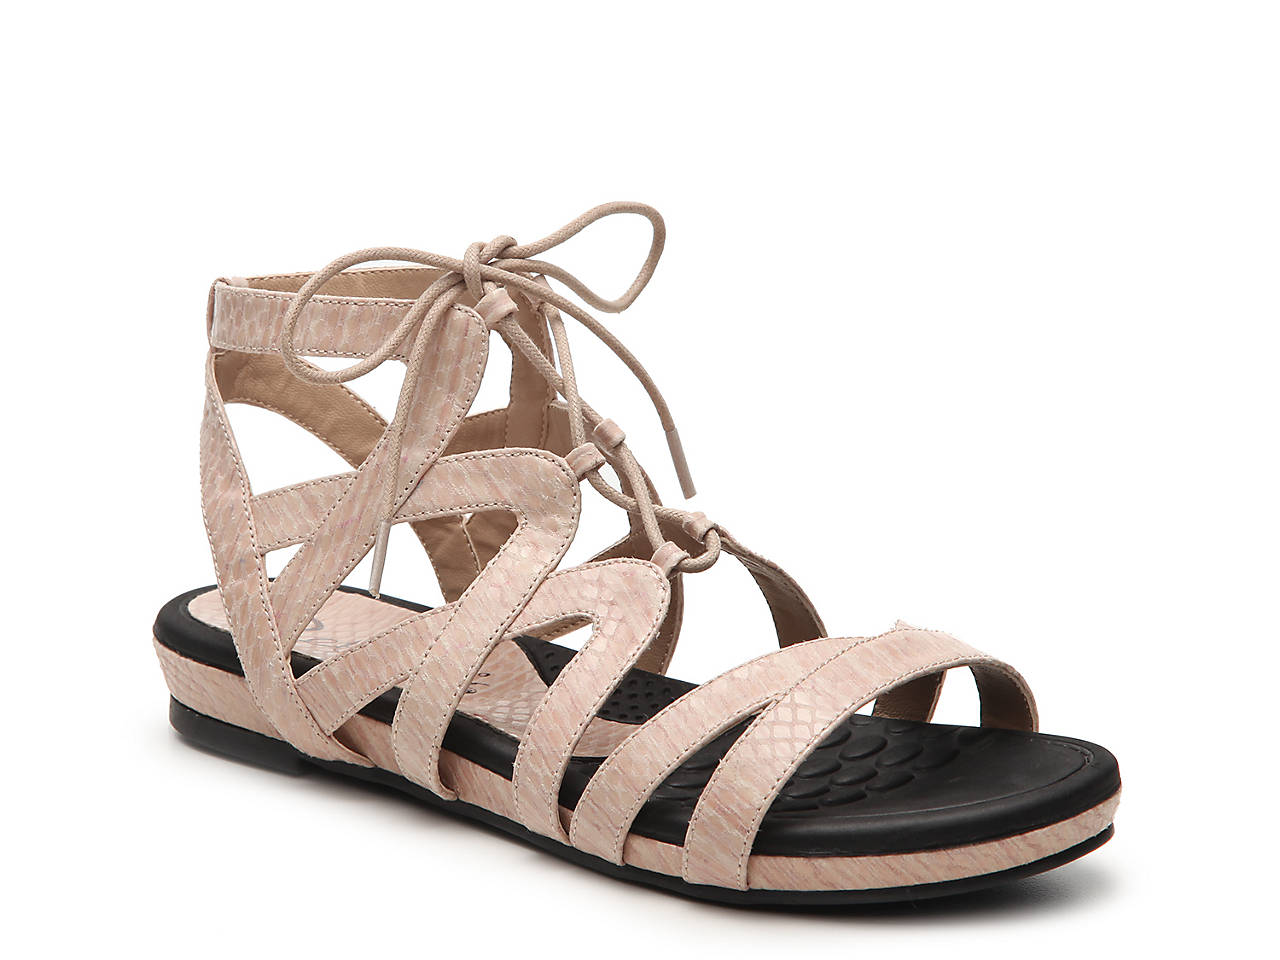 93f50eaaa3f Bellini Trendy Gladiator Sandal Women s Shoes